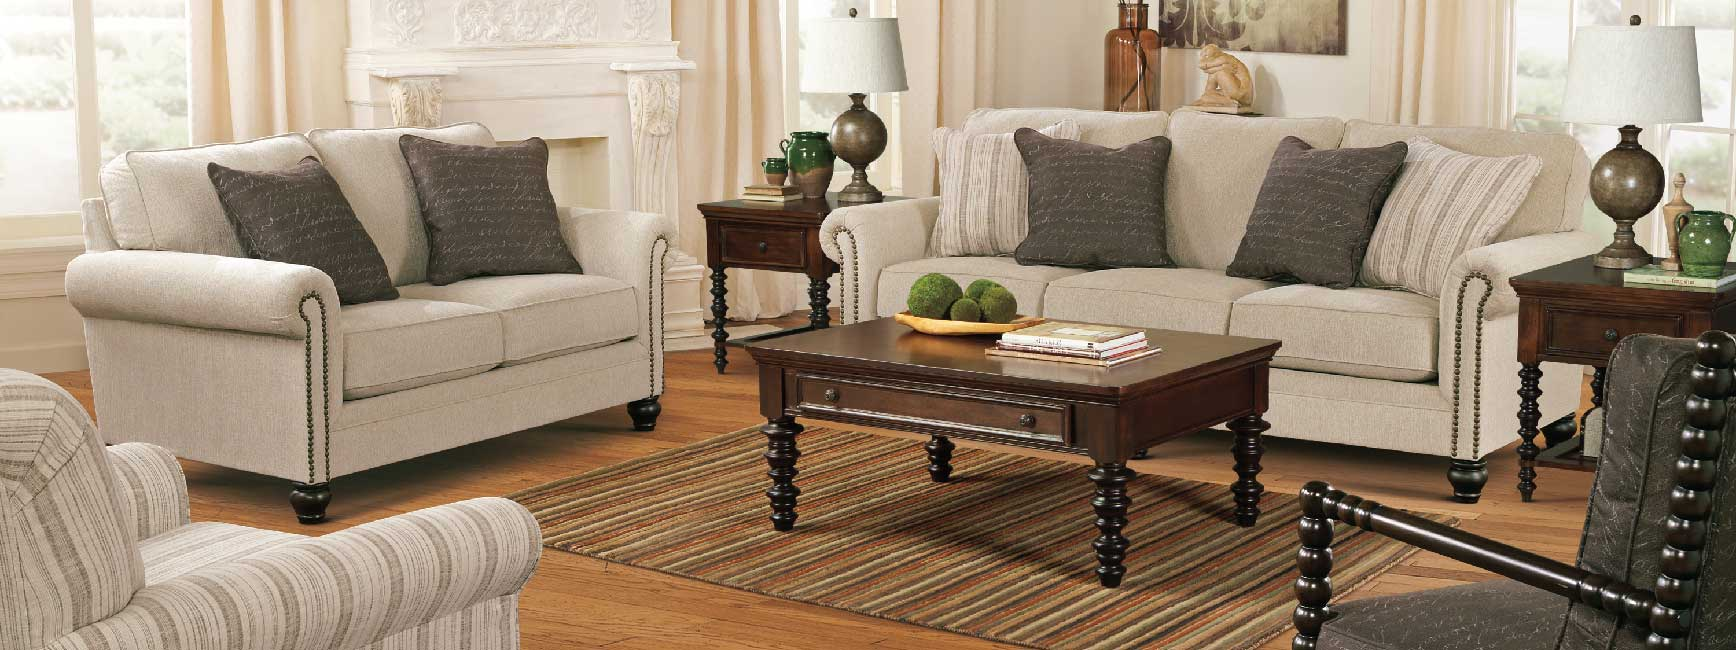 Visit Our Home Furniture Store In Sacramento Ca